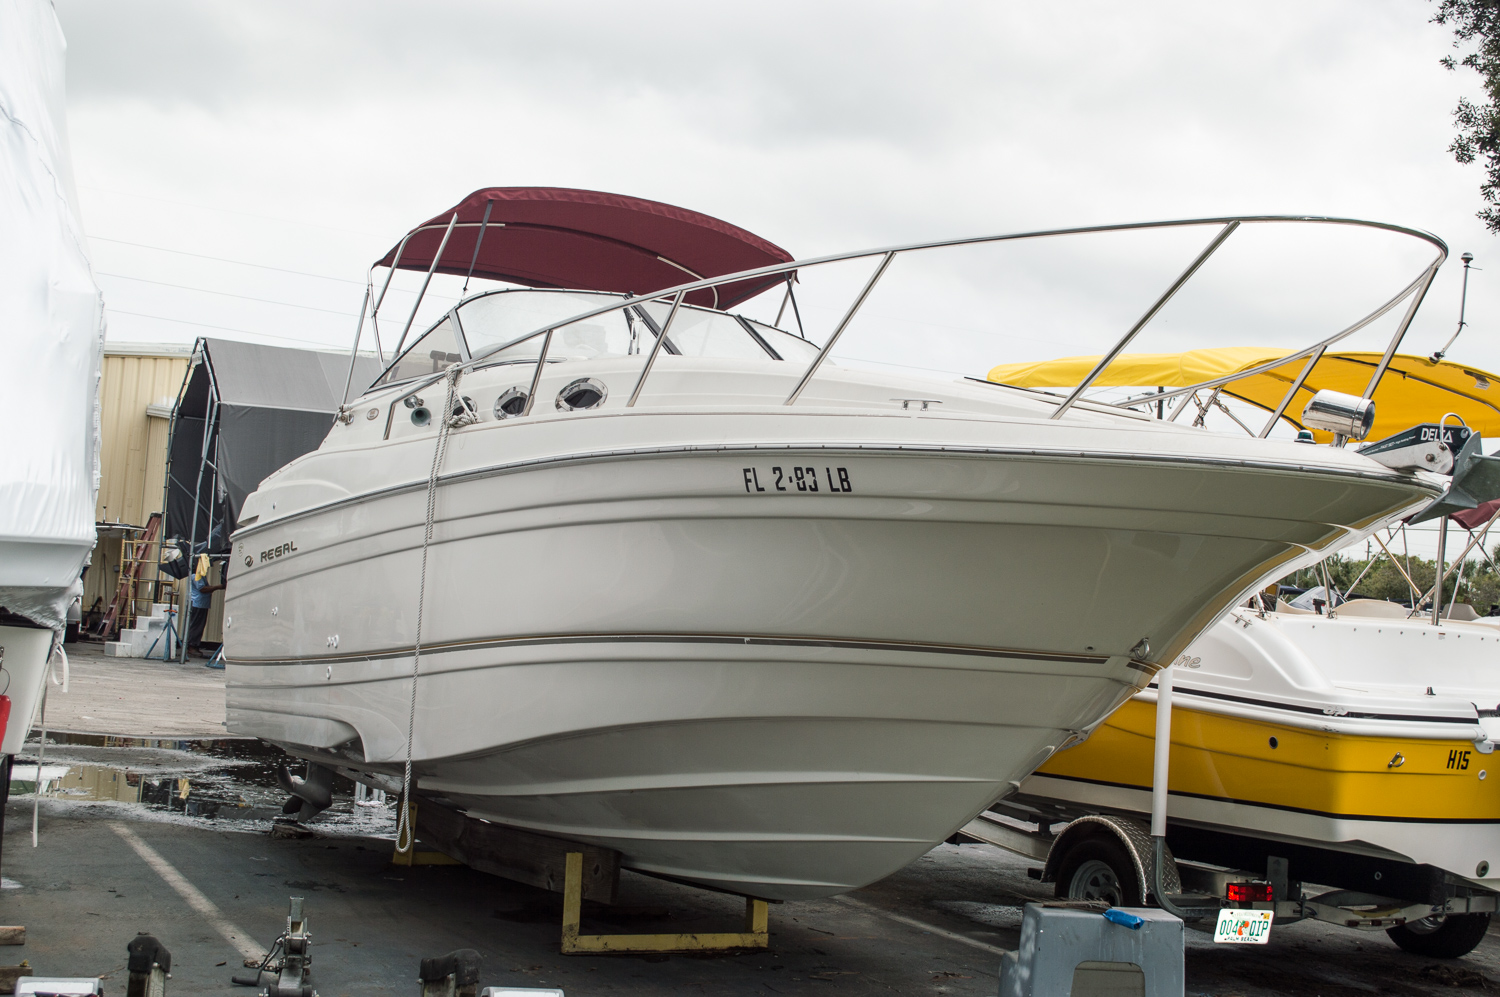 hight resolution of regal used boats images array boat dealer regal boat dealer rh boatdealersekireru blogspot com